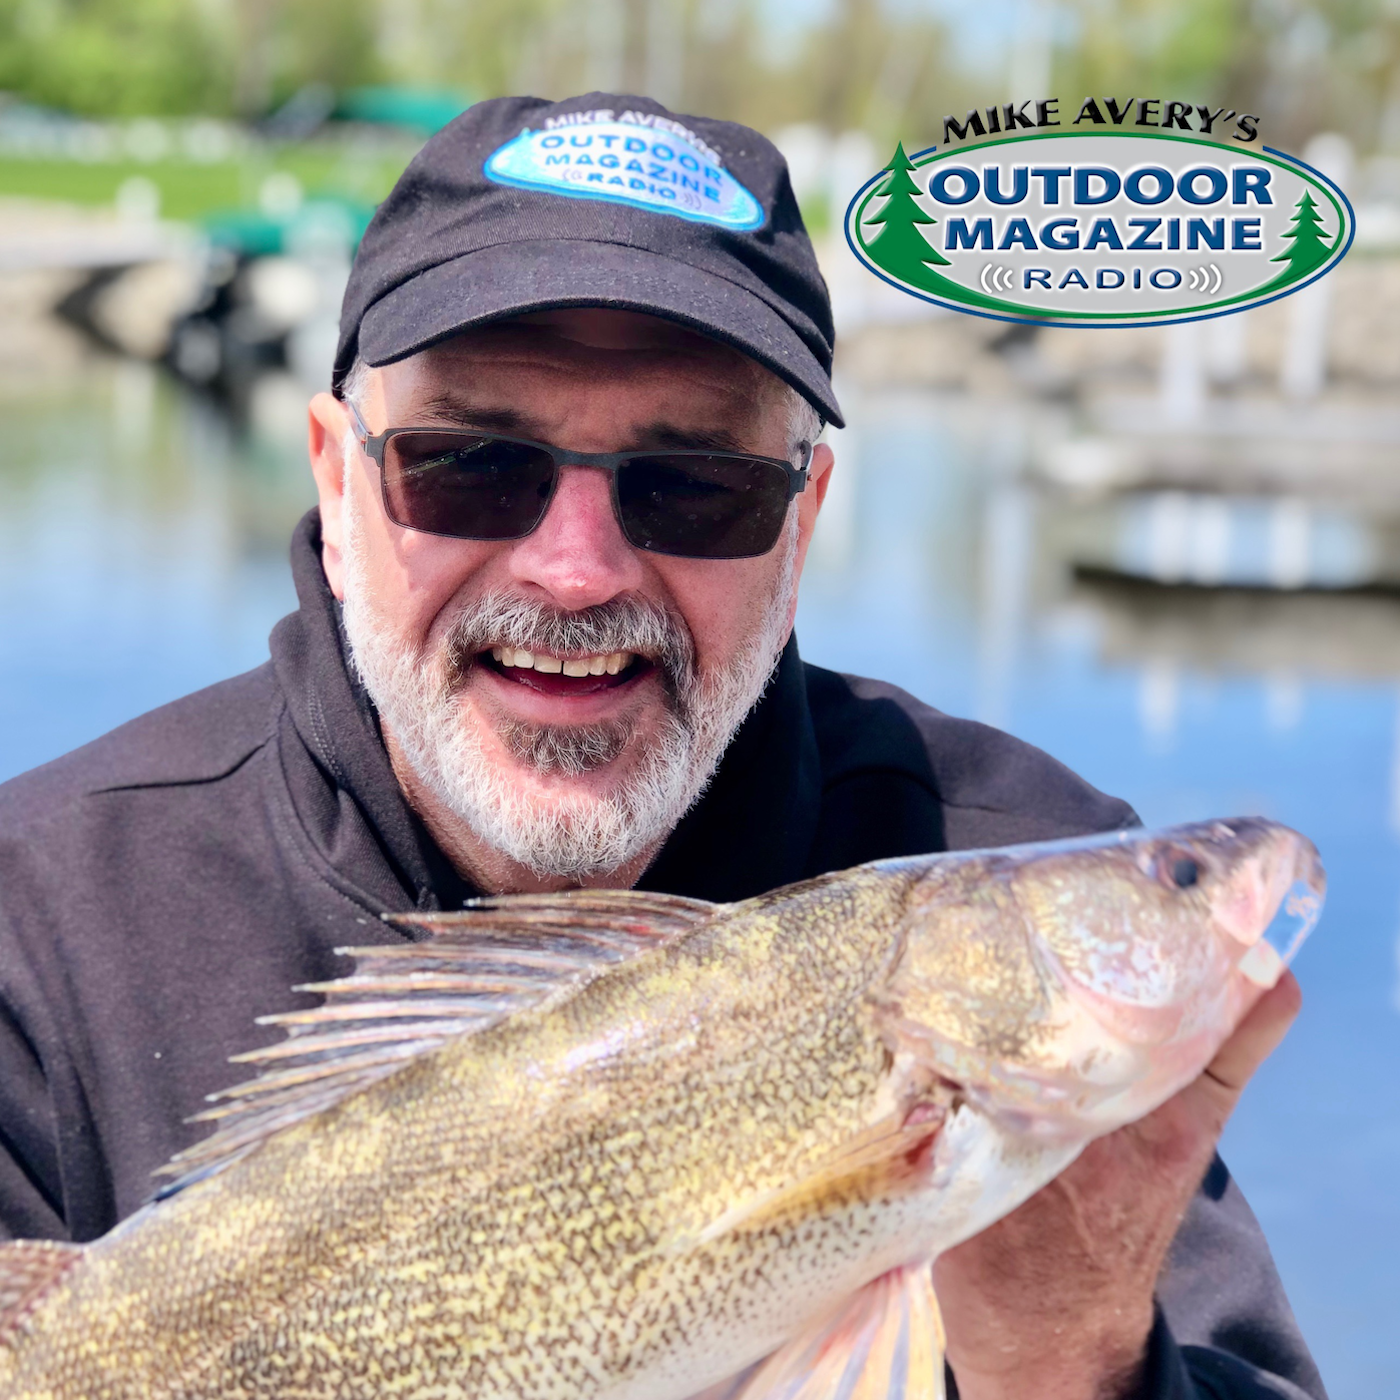 Home - Mike Avery Outdoors - Podcast, Radio and Video